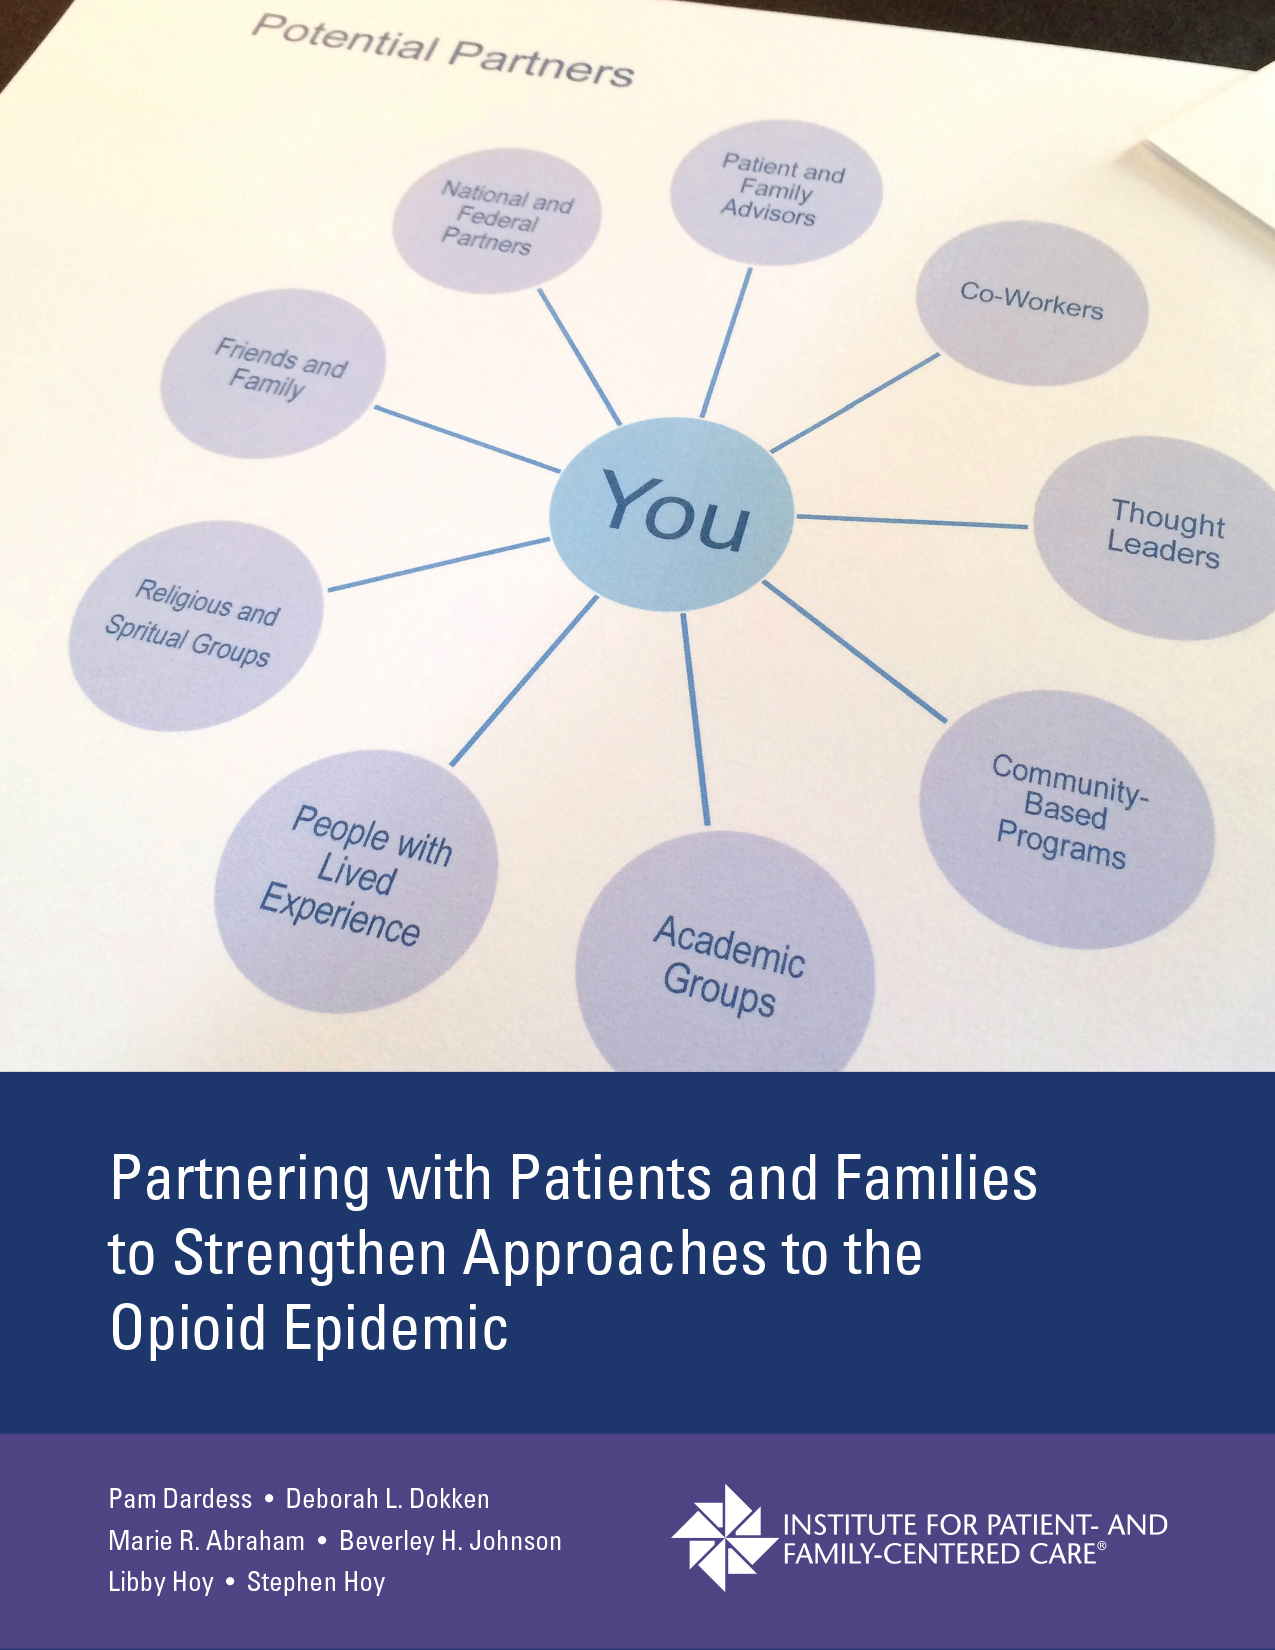 cover of Partnering with Patients and Families to Strengthen Approaches to the Opioid Epidemic white paper